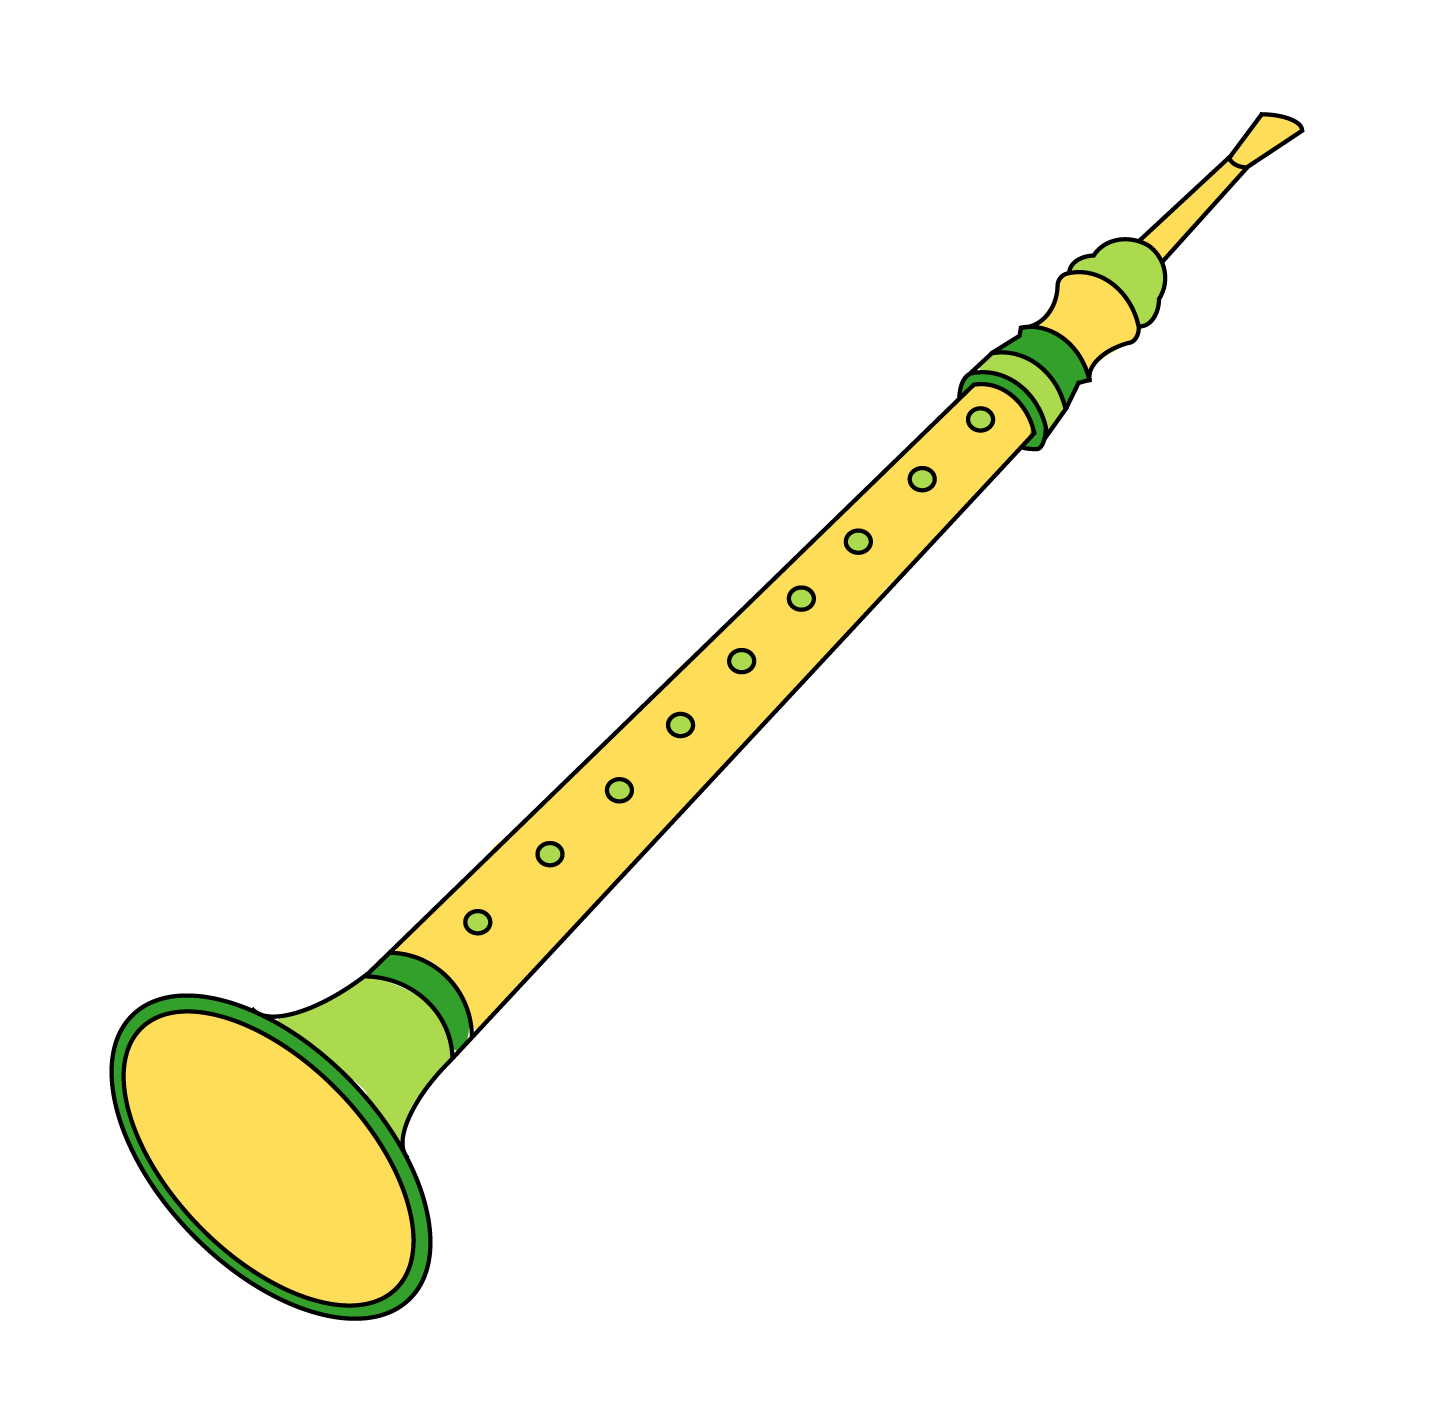 Research project: January 2013 Nadaswaram Instrument Clipart